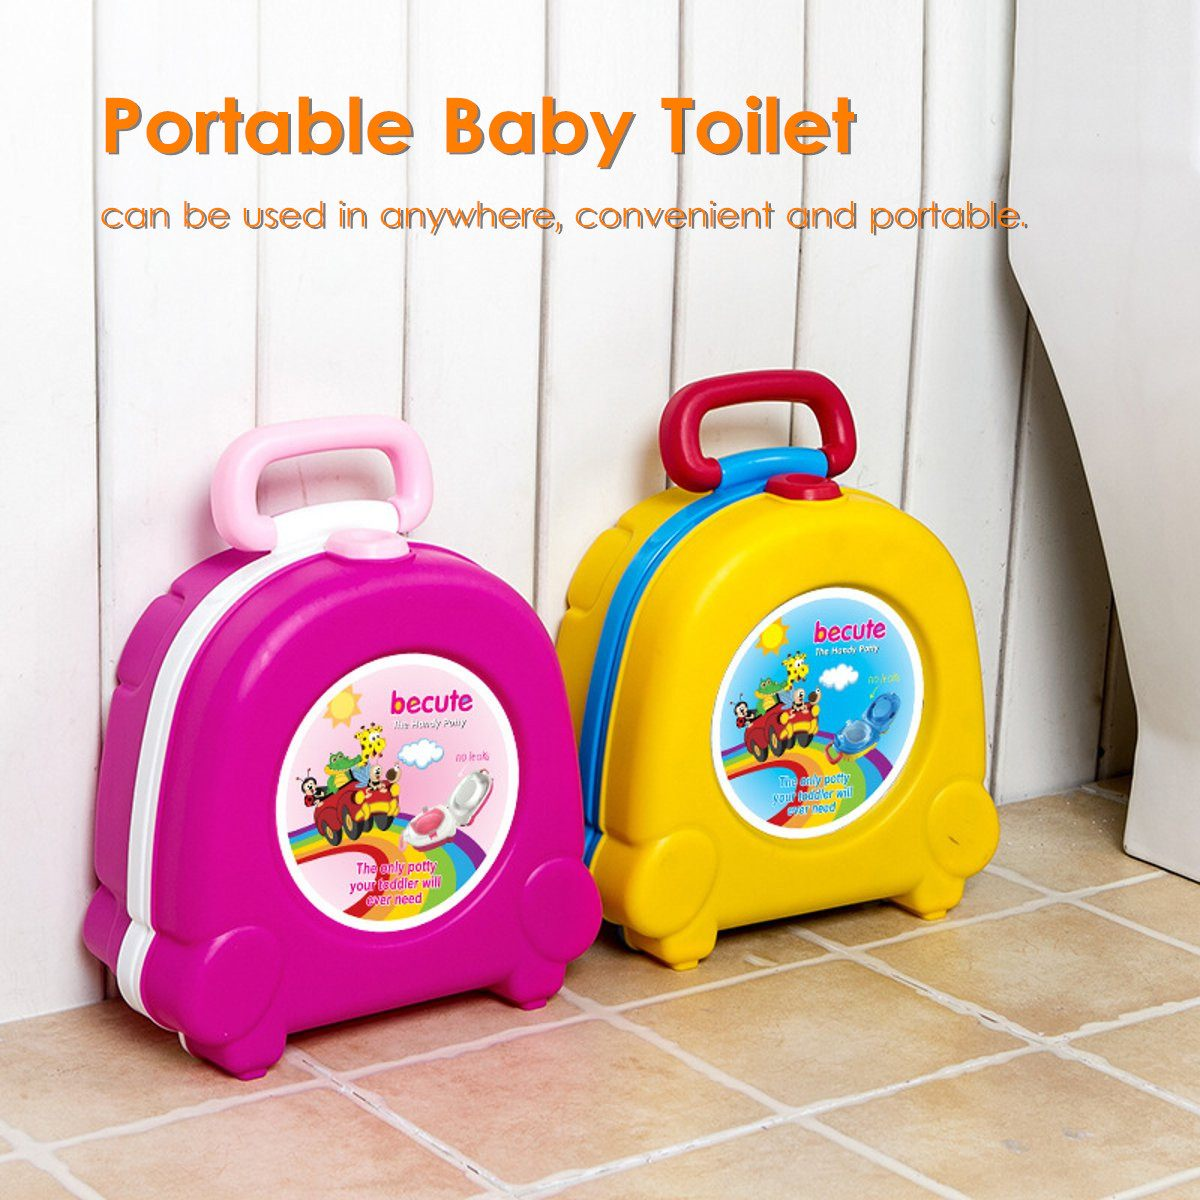 Portable Baby Toilet Children Toddler Urinal Training Travel Folding Potty Seat Outside Travel Car Infants Toilet Pink/Yellow